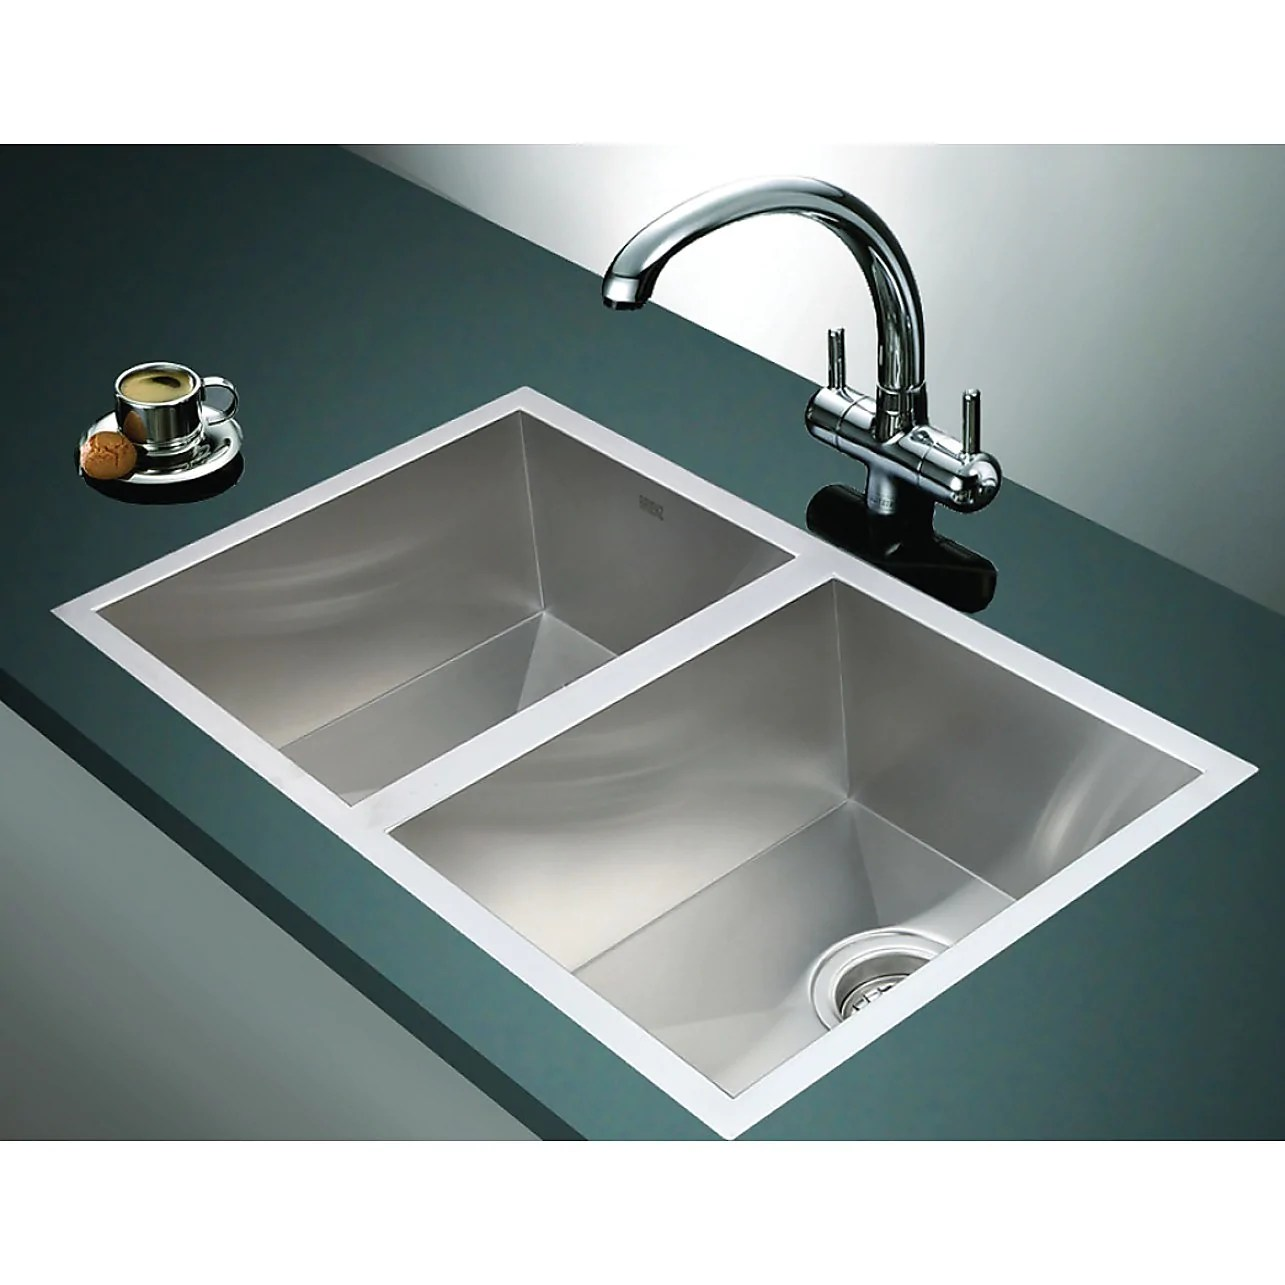 1 2mm handmade double stainless steel sink with waste 770x450mm